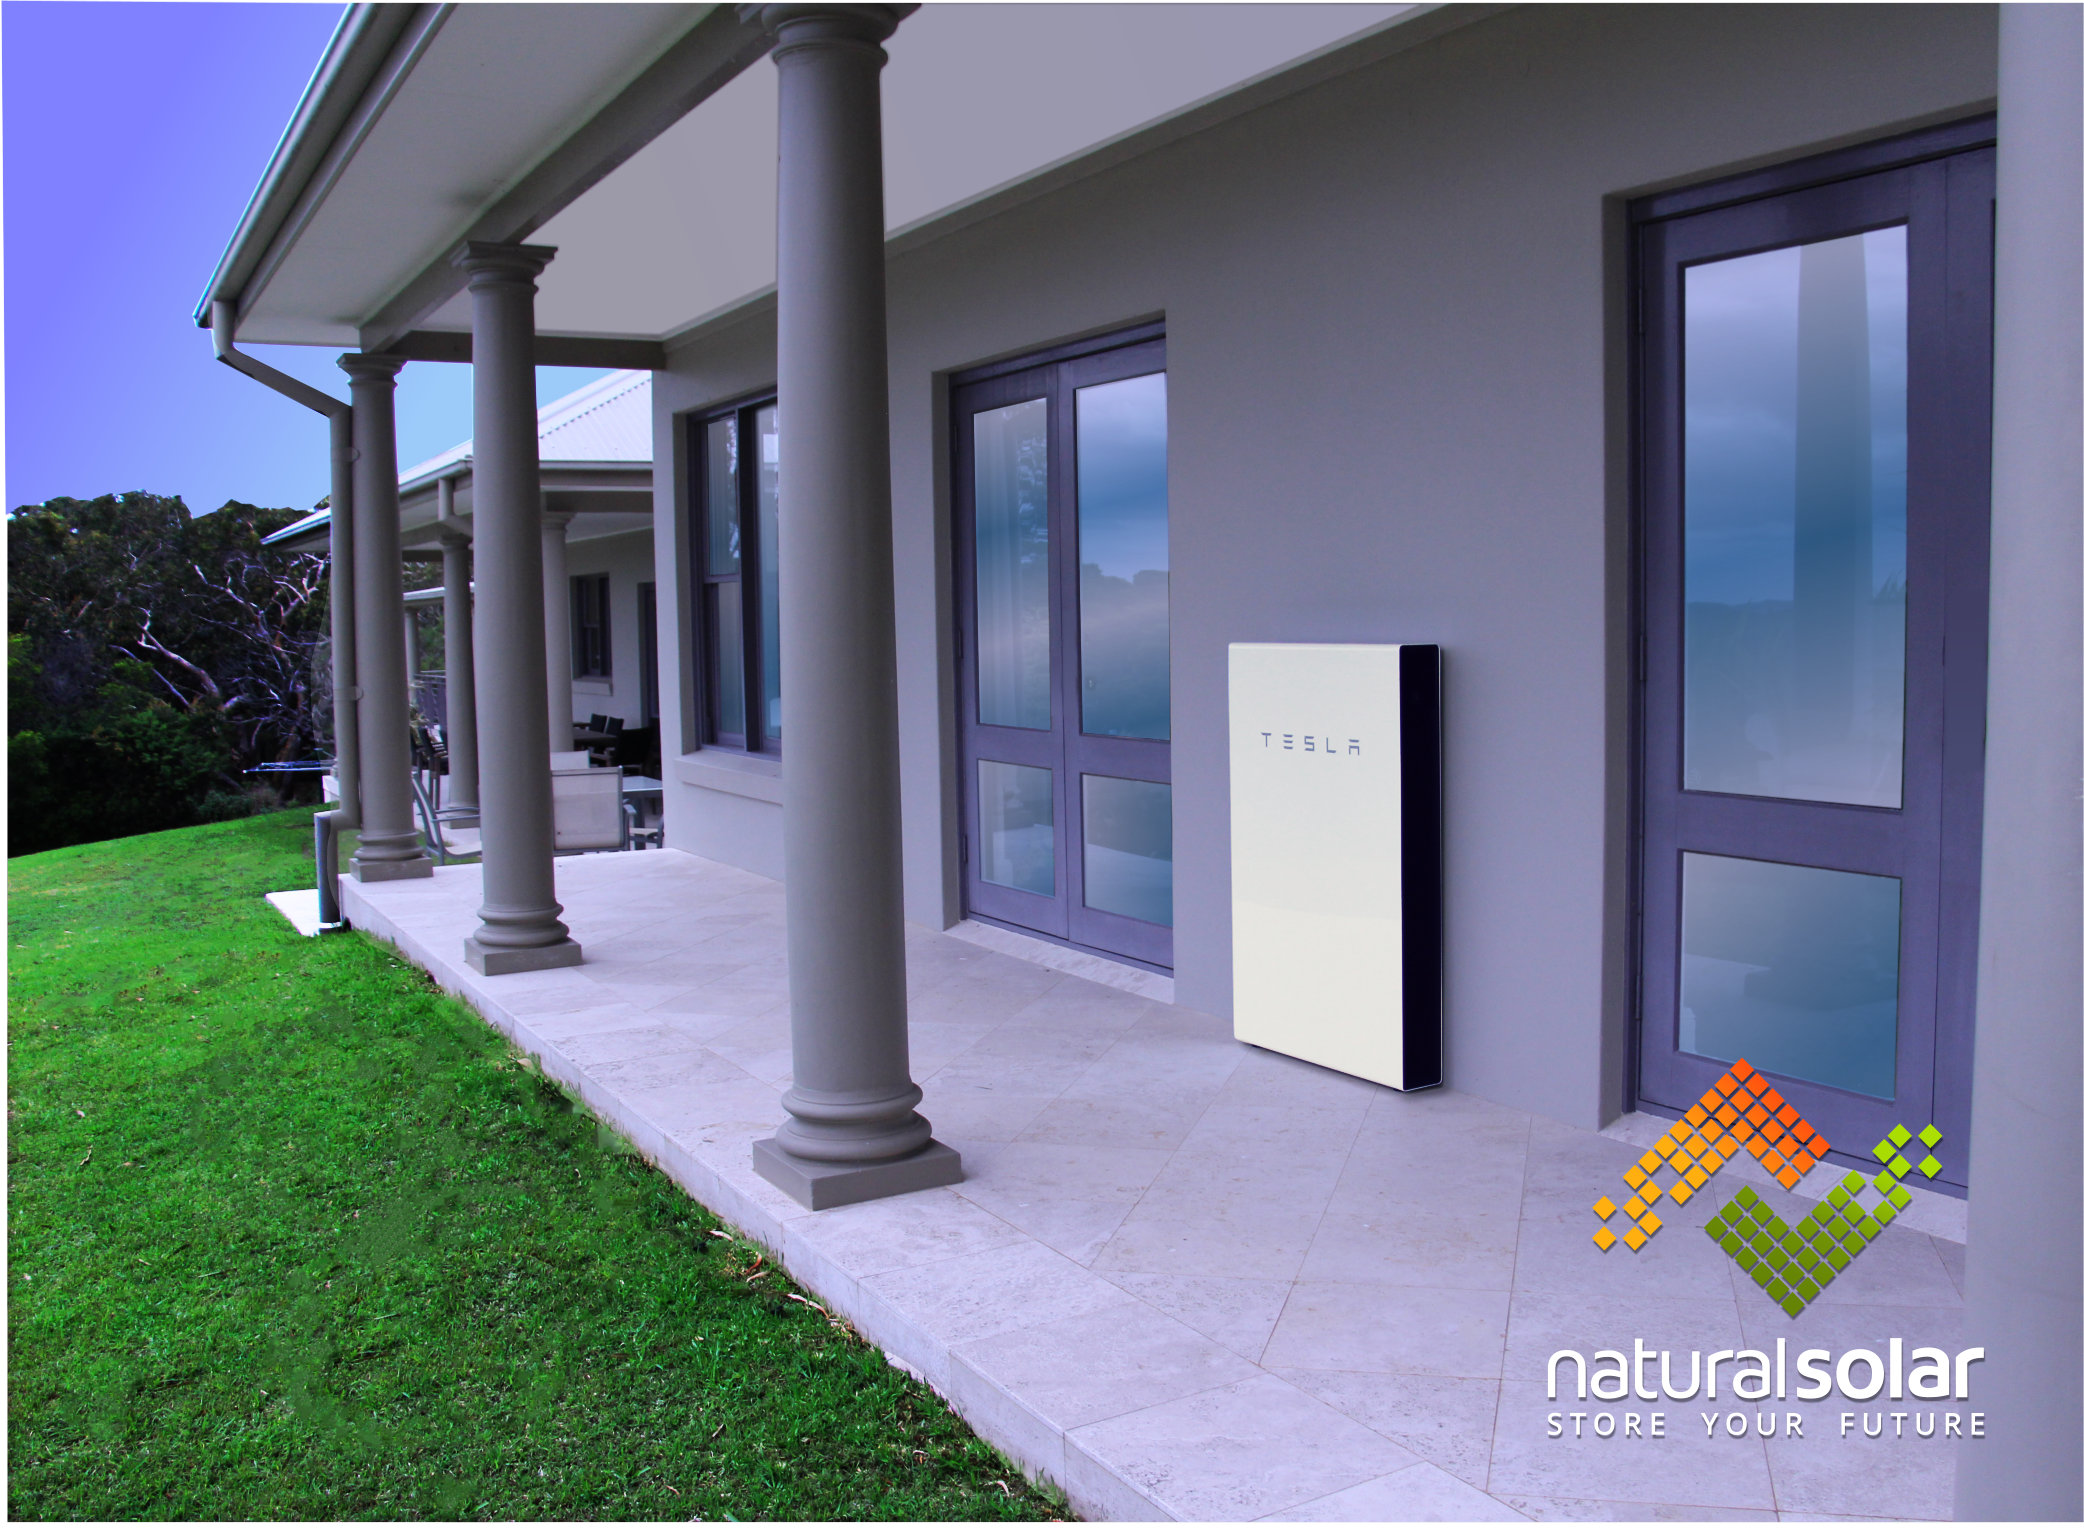 Tesla Powerwall Home Battery is an energy storage system for solar PV